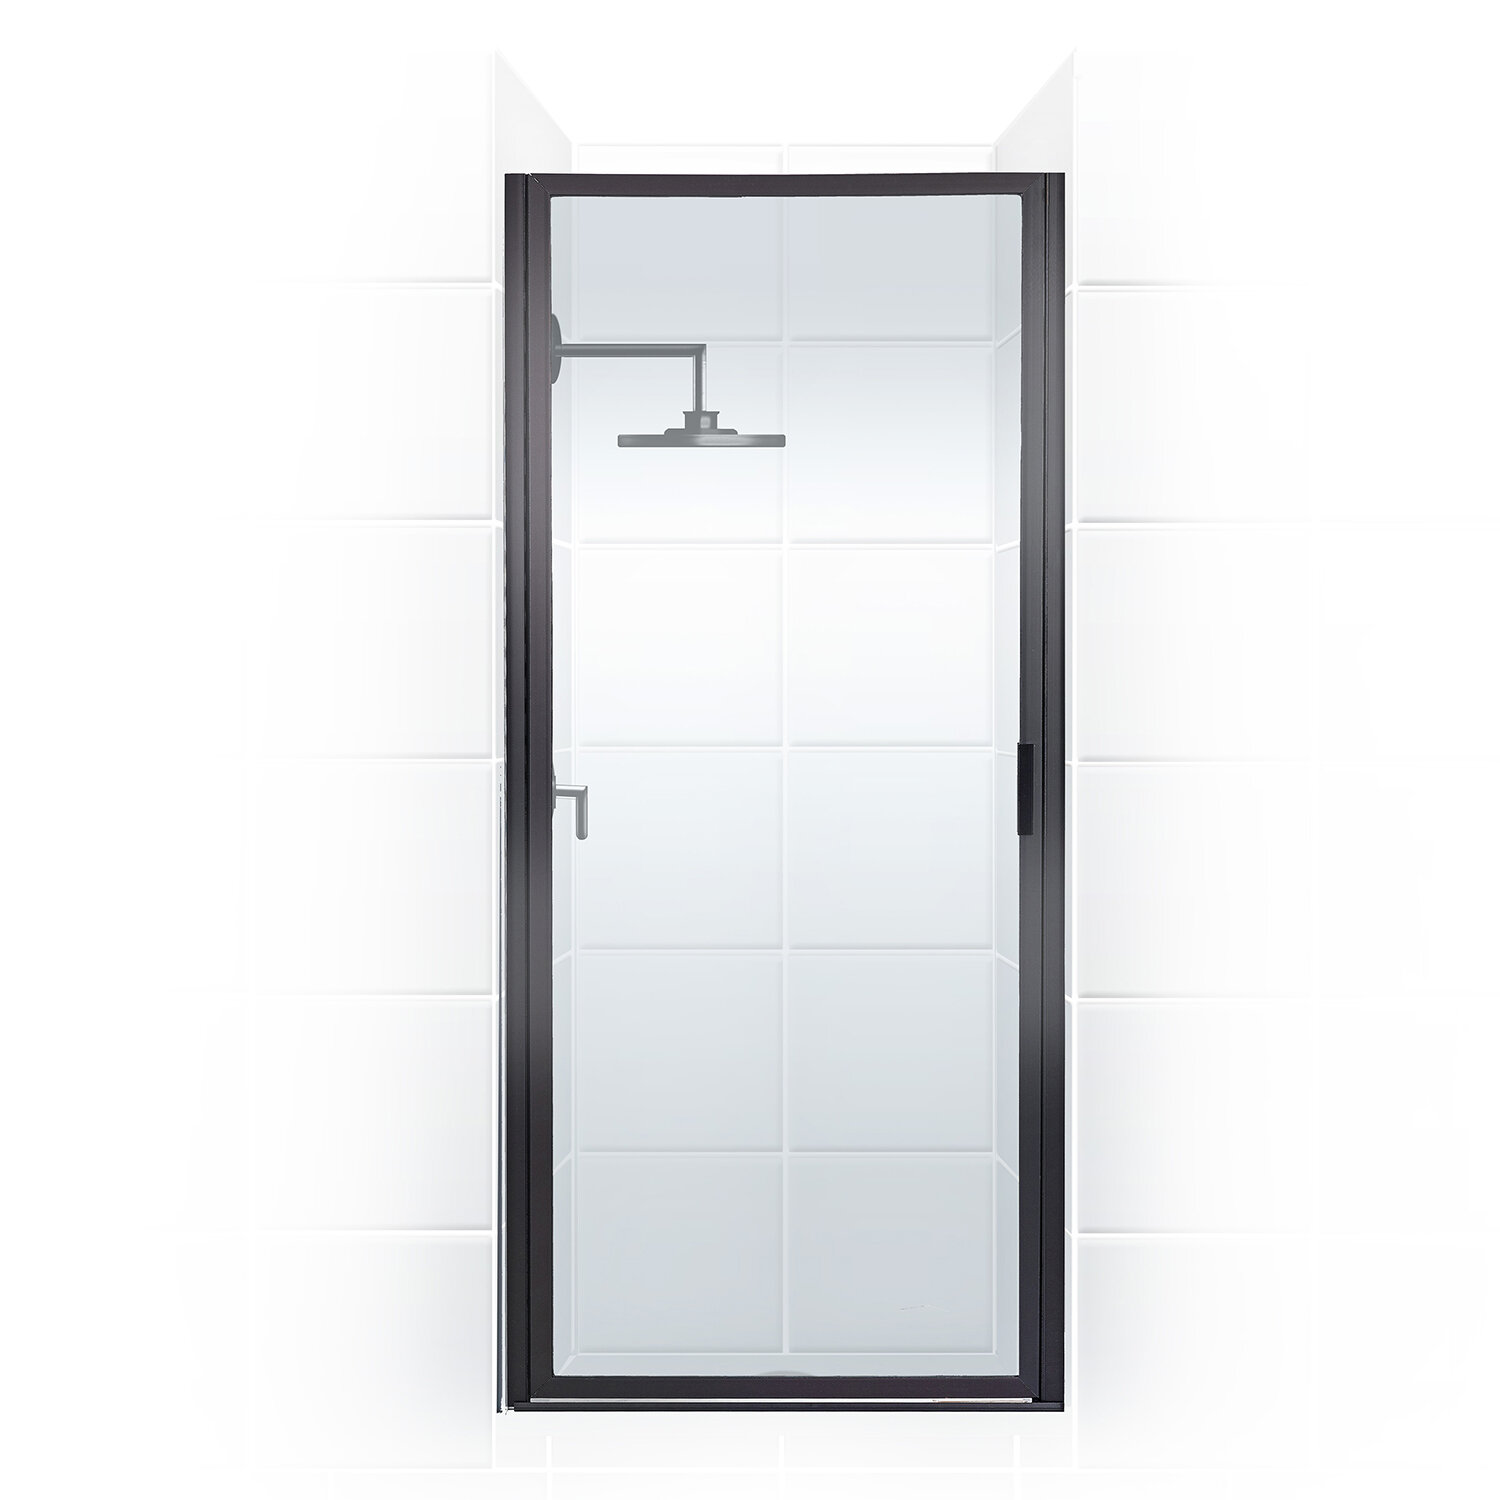 Coastal Industries Paragon Series 34 X 75 Hinged Framed Shower Door Wayfair